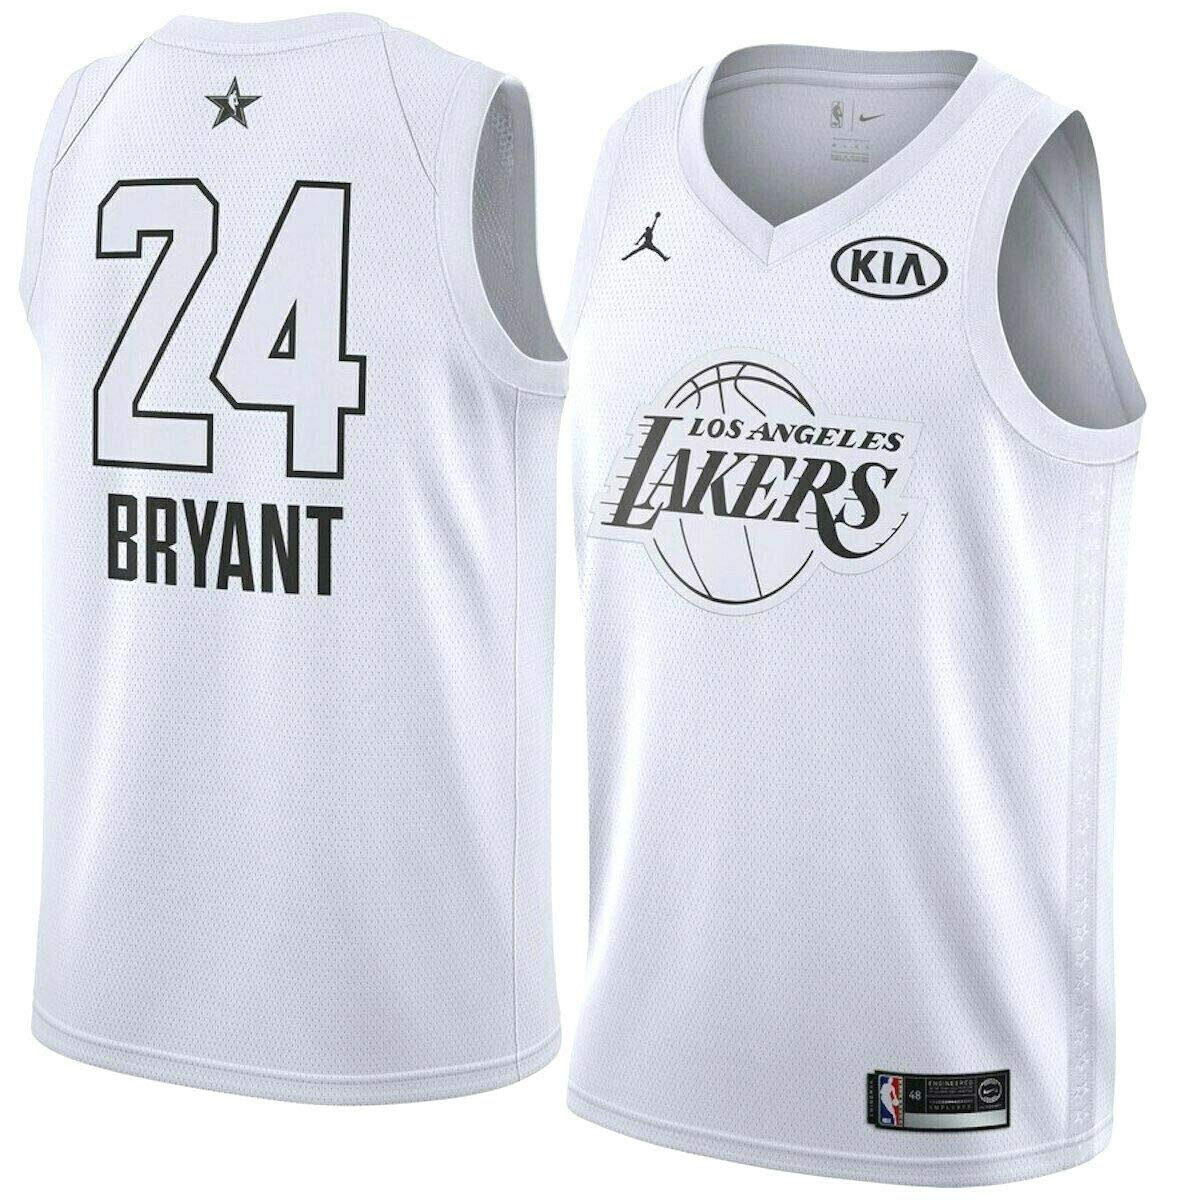 huge selection of 16d5c 64fad Amazon.com: Nike Youth LA Lakers Kobe #24 All Star Game ...